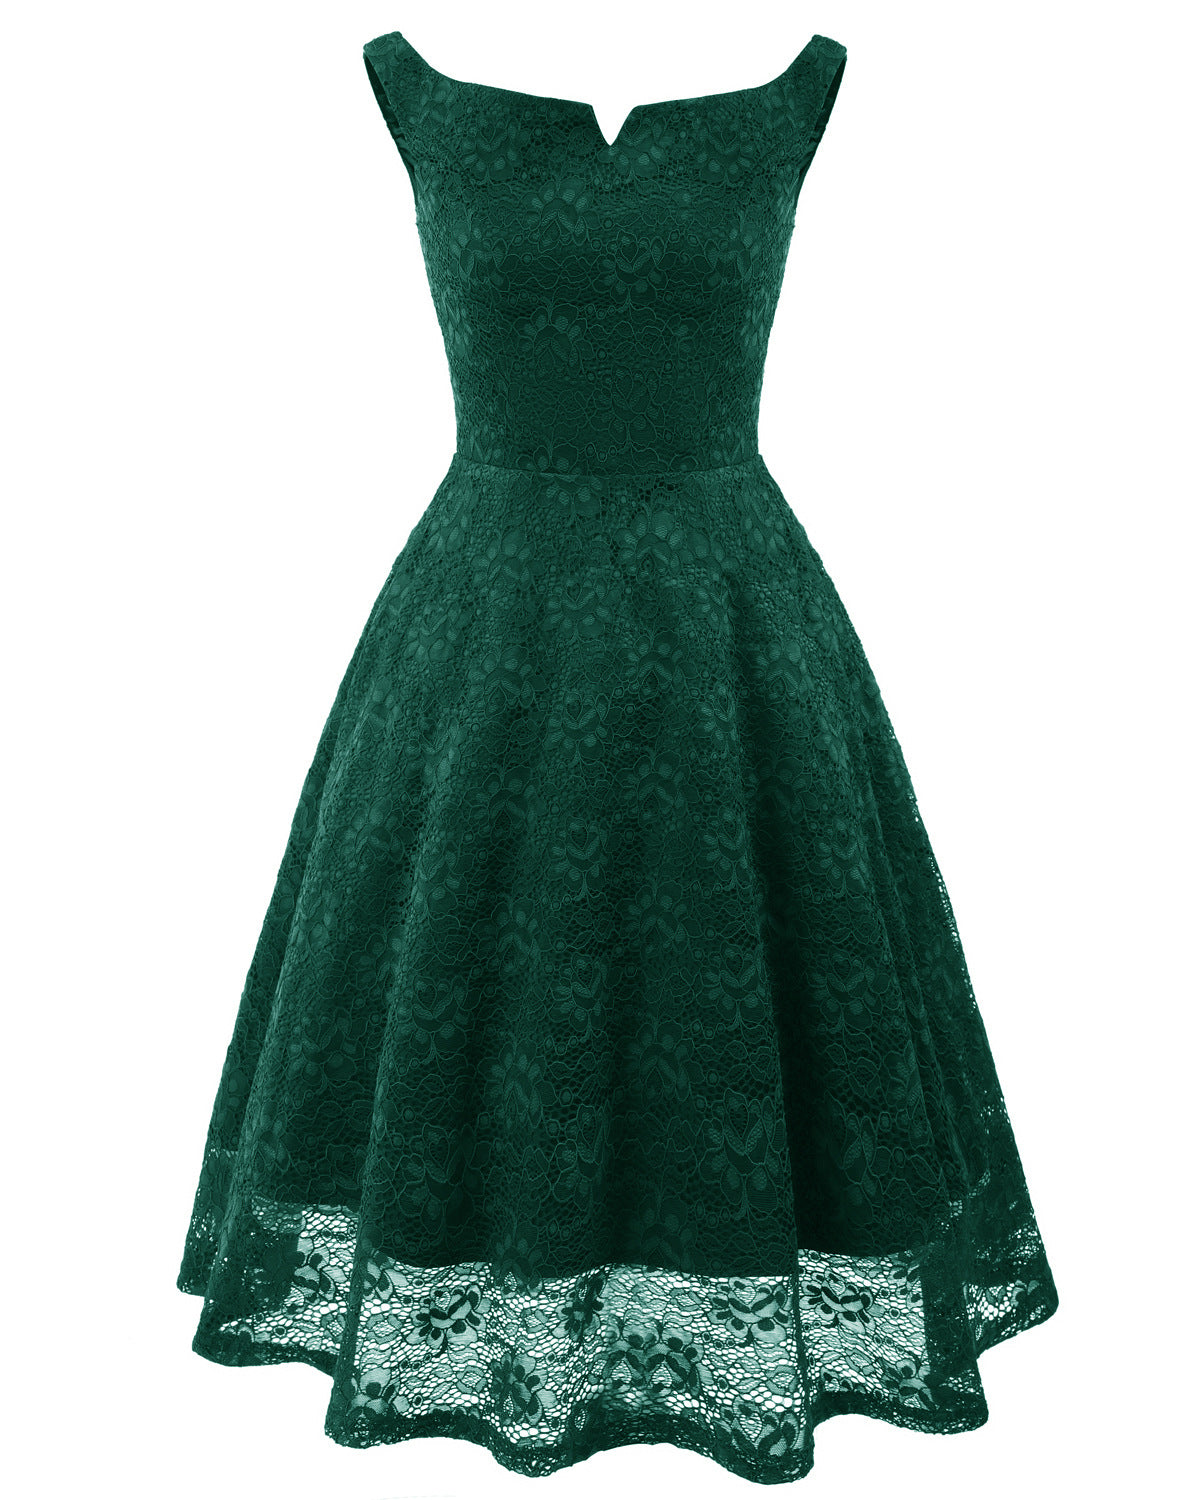 Vintage Simple V Collar Hapqeelin Dress Elegant Sleeveless 1950s Dress with Embroidery